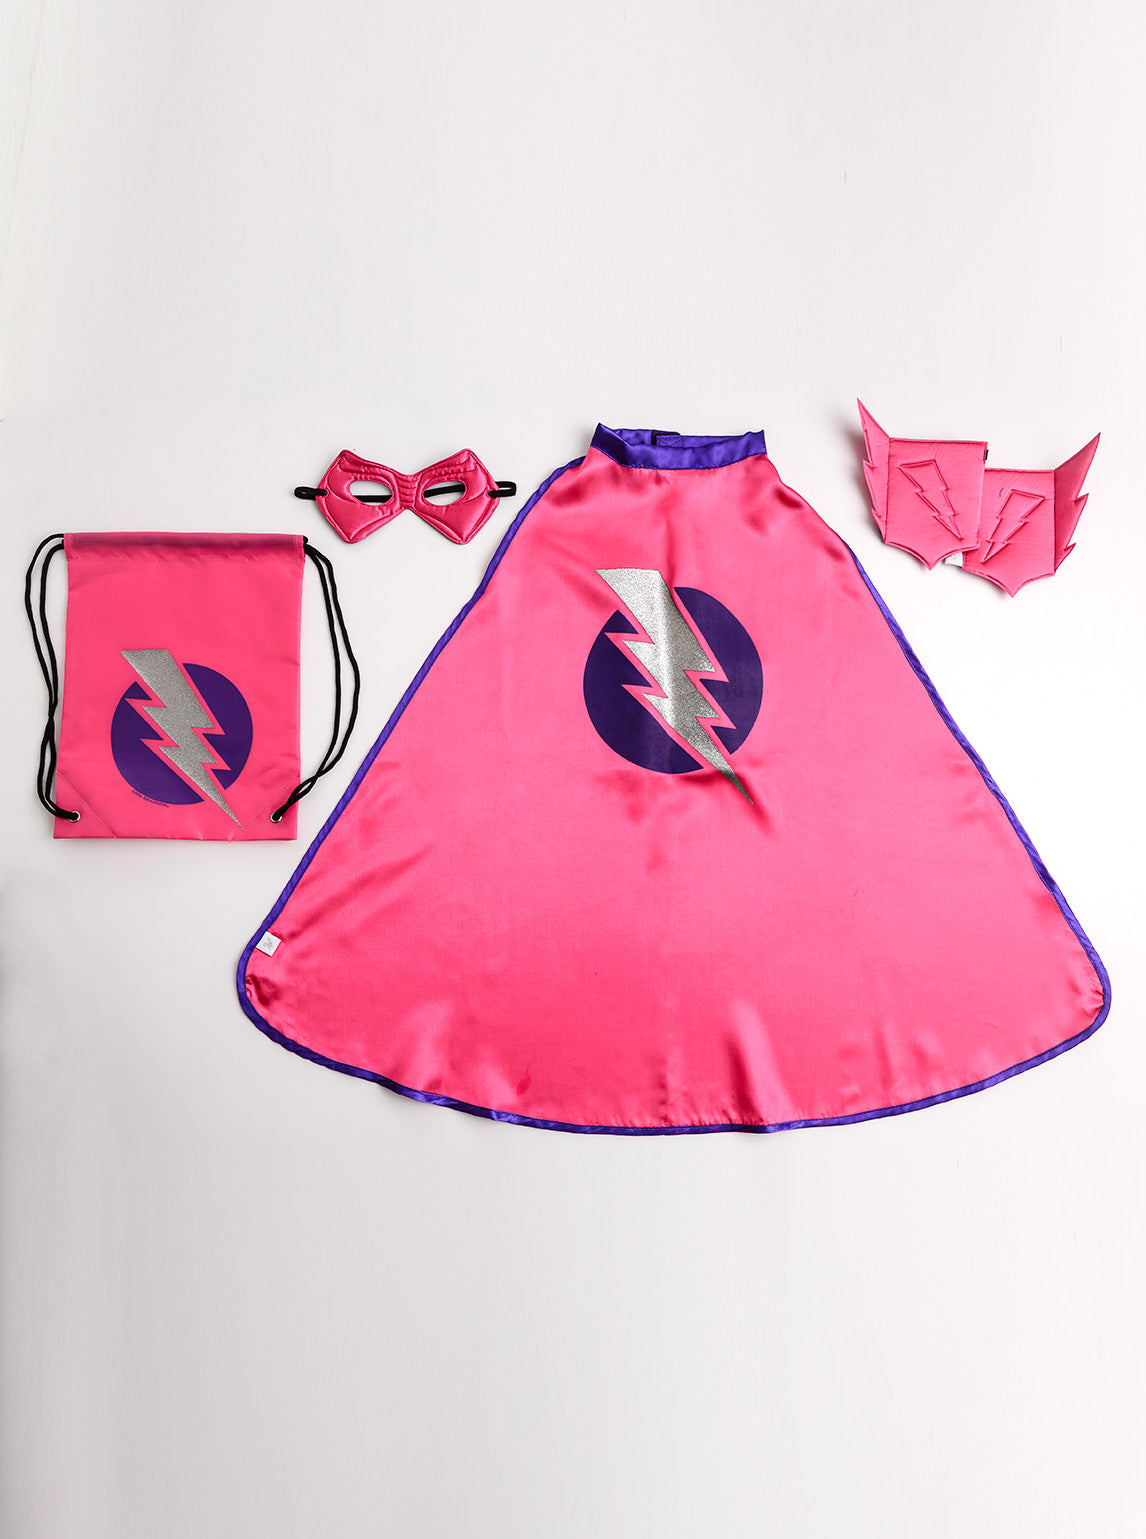 Little Adventures Boy Hero Gift Set is a perfectly packaged hero set that conveniently fits inside its matching drawstring bag. Give as a gift or just because, this Gift Set is all you need! Intended for ages 3-5 this set comes with a Red Hero Cape, Reversible Power Mask, Red Hero Cuffs, and Hero Drawstring Bag.